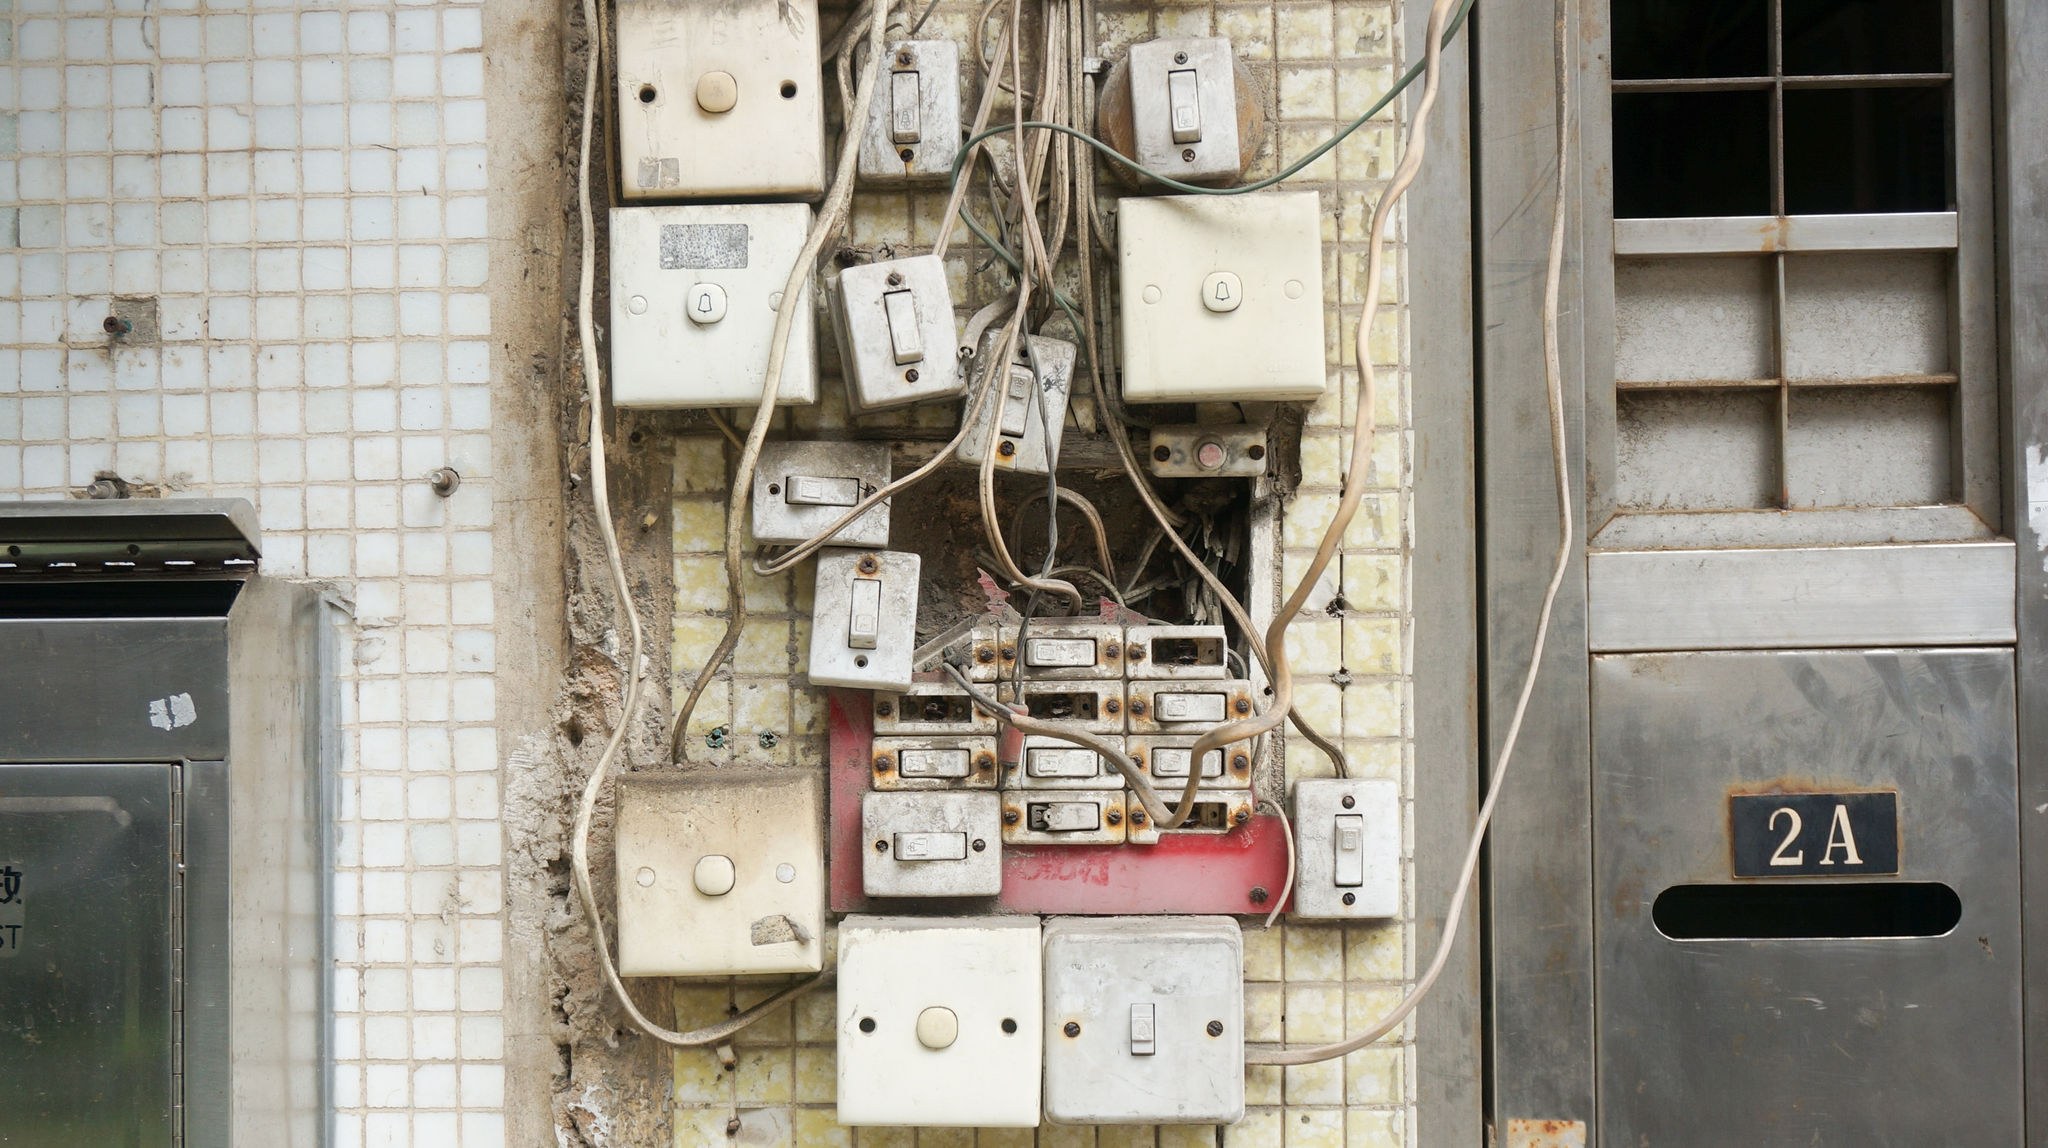 Federal Pacific Electrical Panel Safety By Rockwall Electric Power Company Through Your Its Breakers Out On Circuits Fpe Was One Of The Most Common Manufacturers Circuit Breaker Panels In North America From 1950s To 1980s